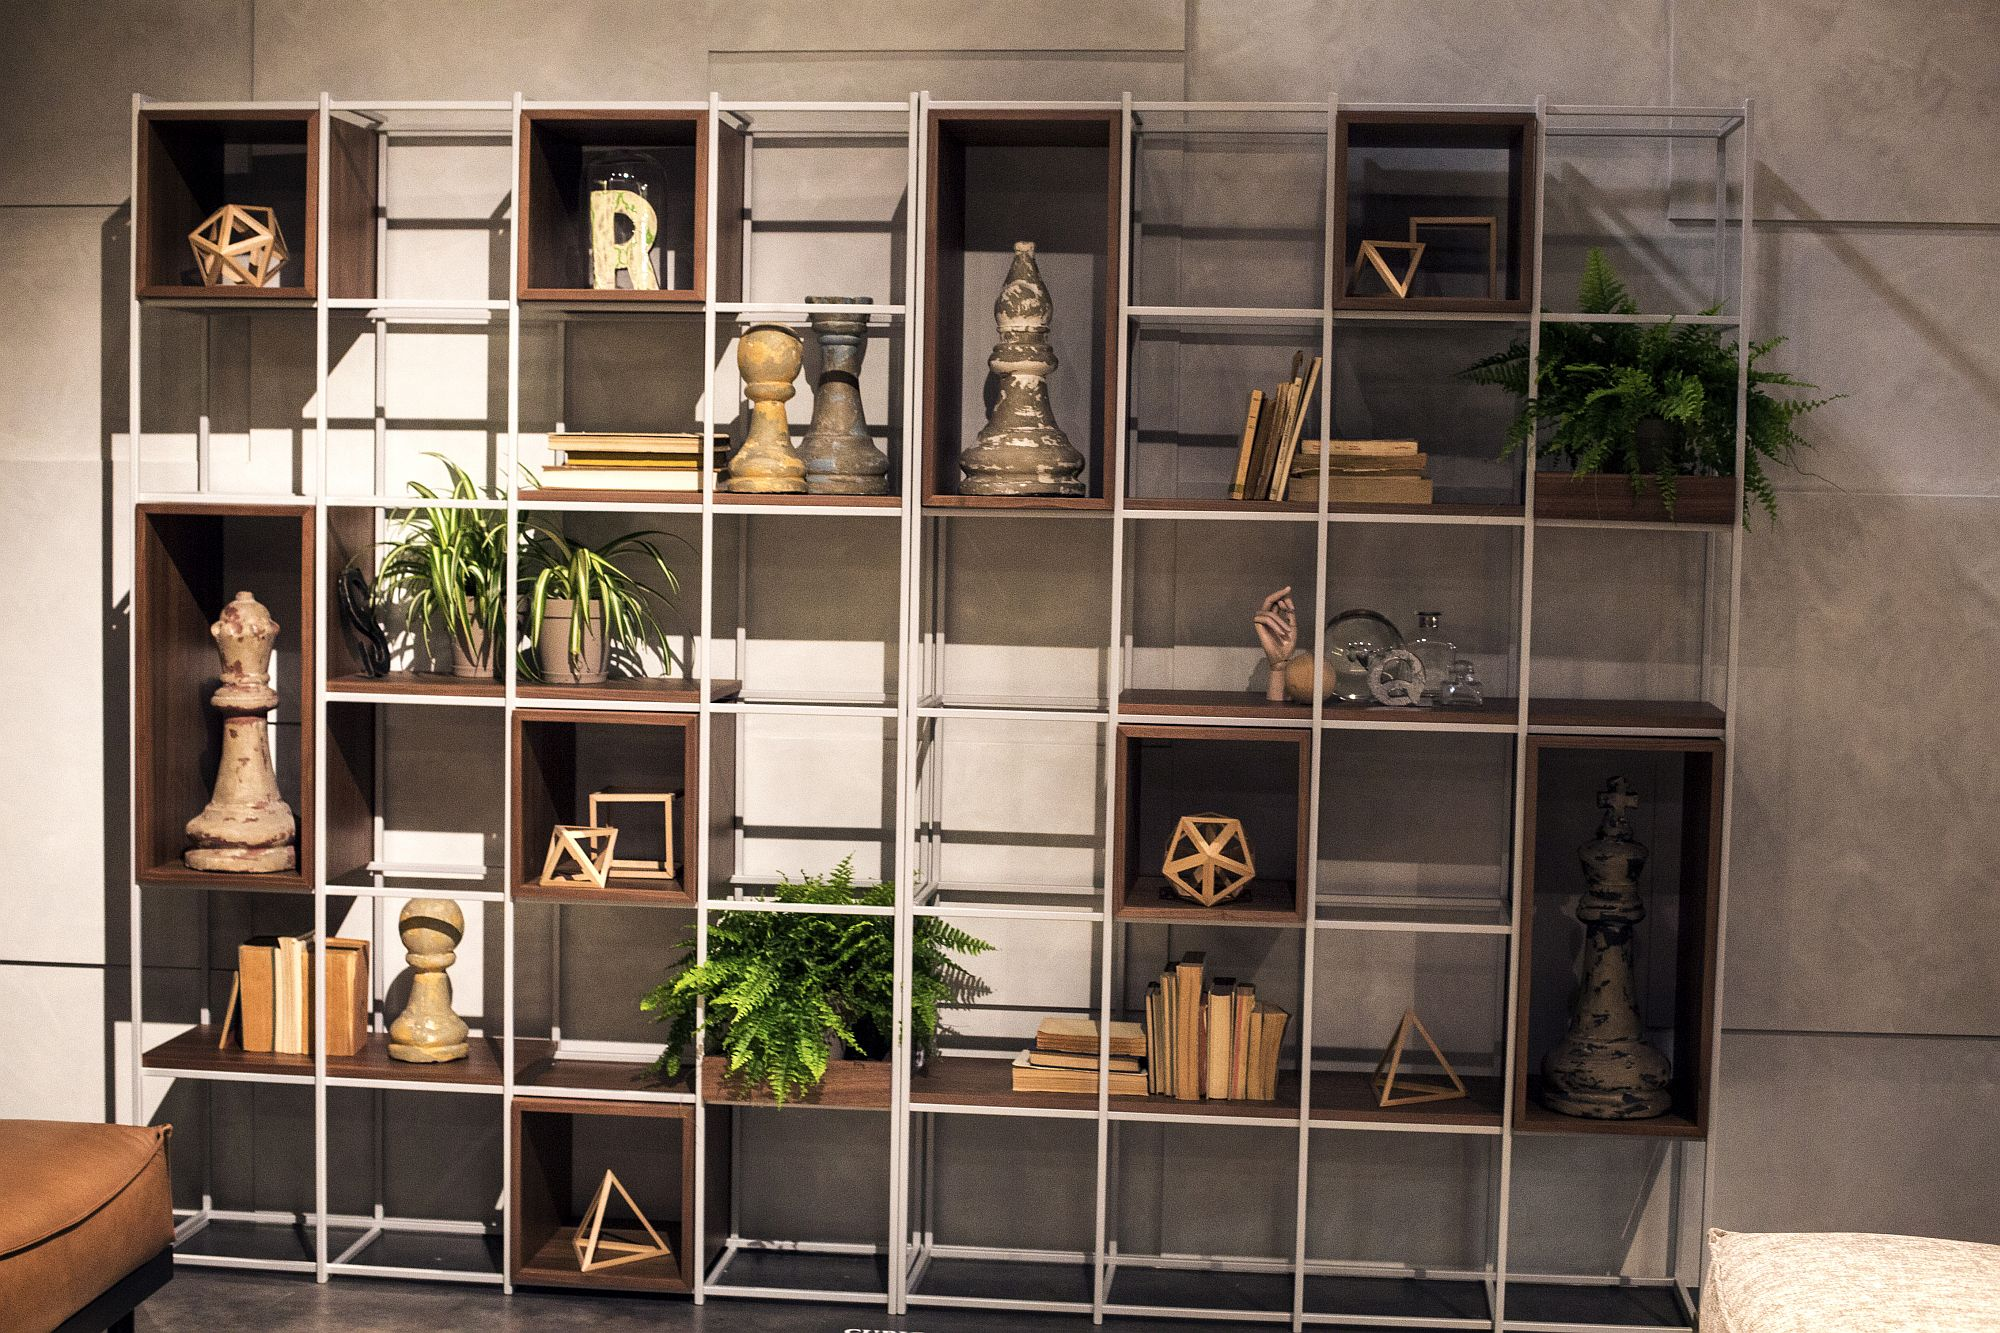 Metallic frame holds wooden boxes that create a cool display